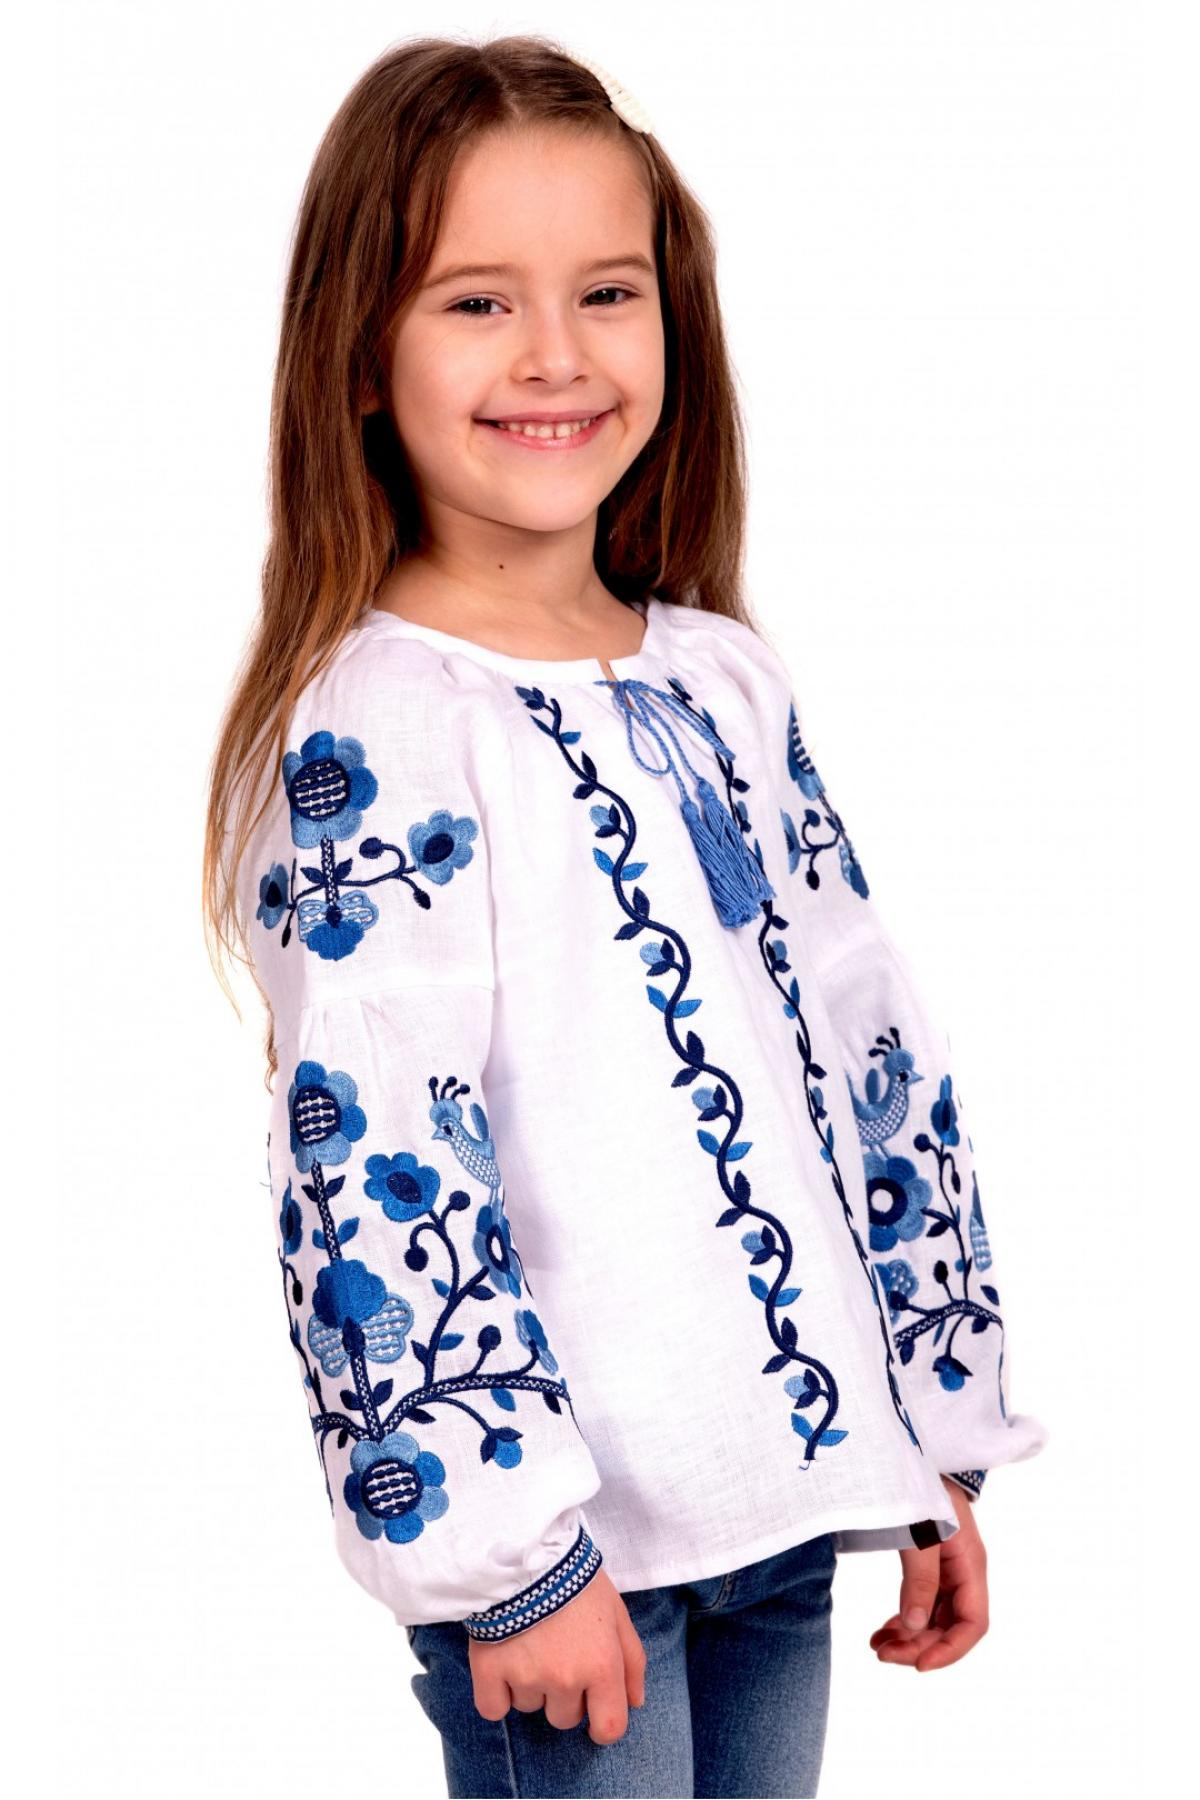 Embroidery for a girl white with blue embroidery